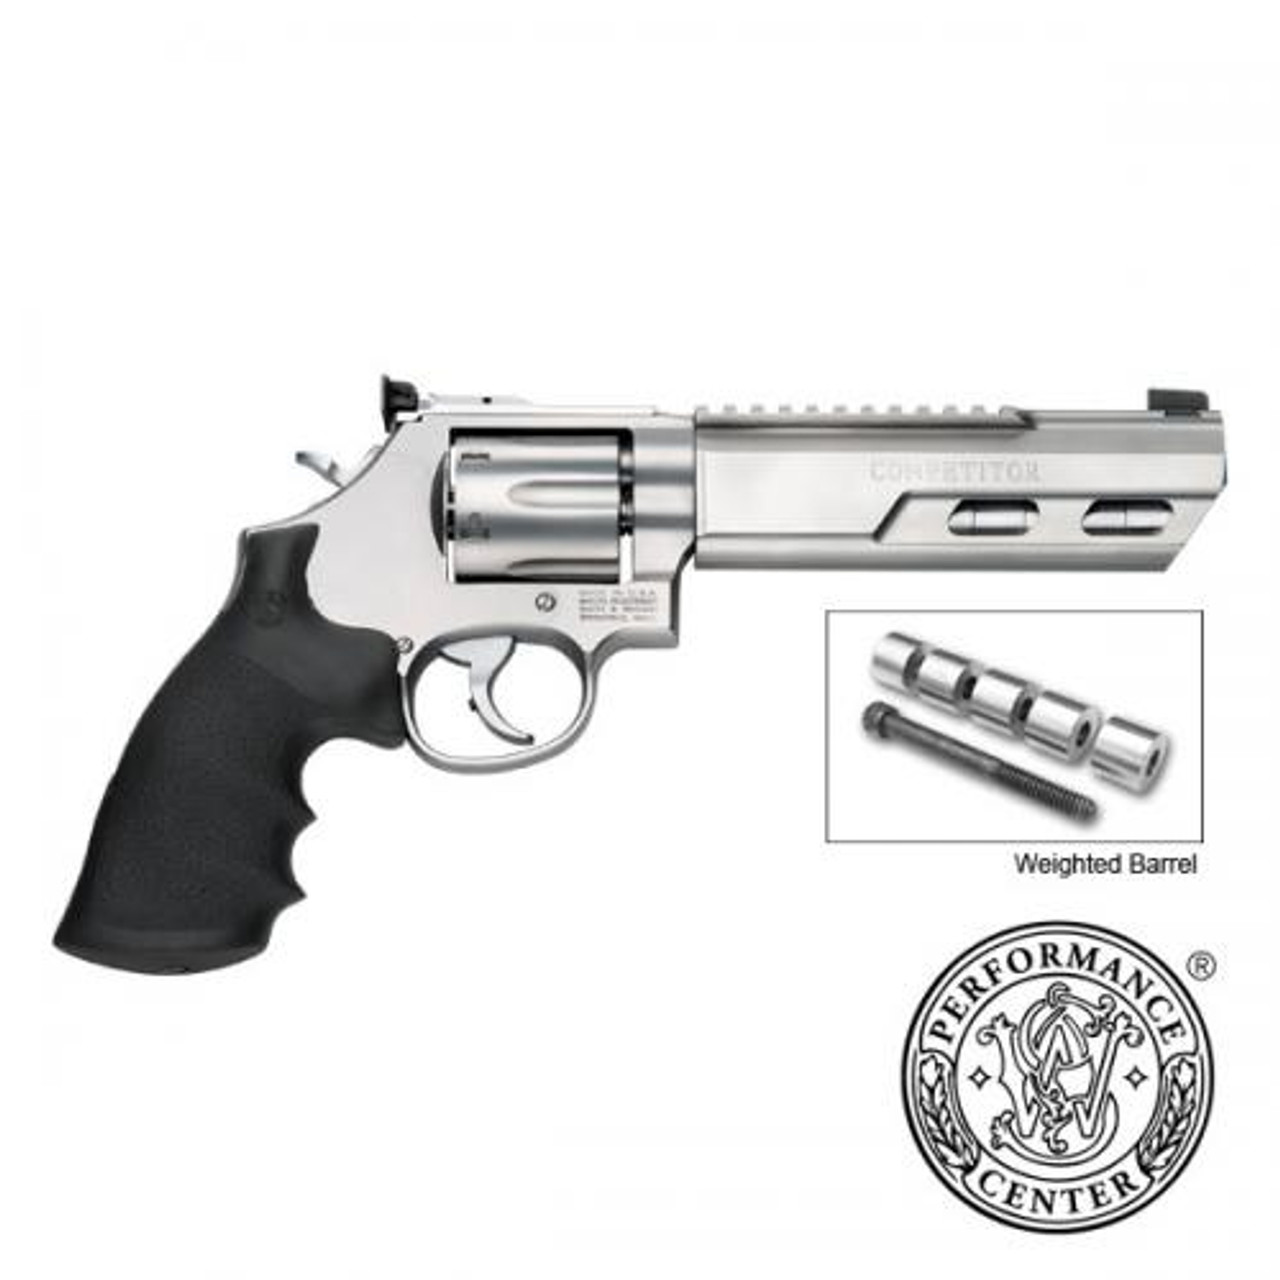 "Smith & Wesson 686 Competitor Performance Center Revolver, .357 MAG, 6"" Weighted Barrel, 6 Shot, Stainless"